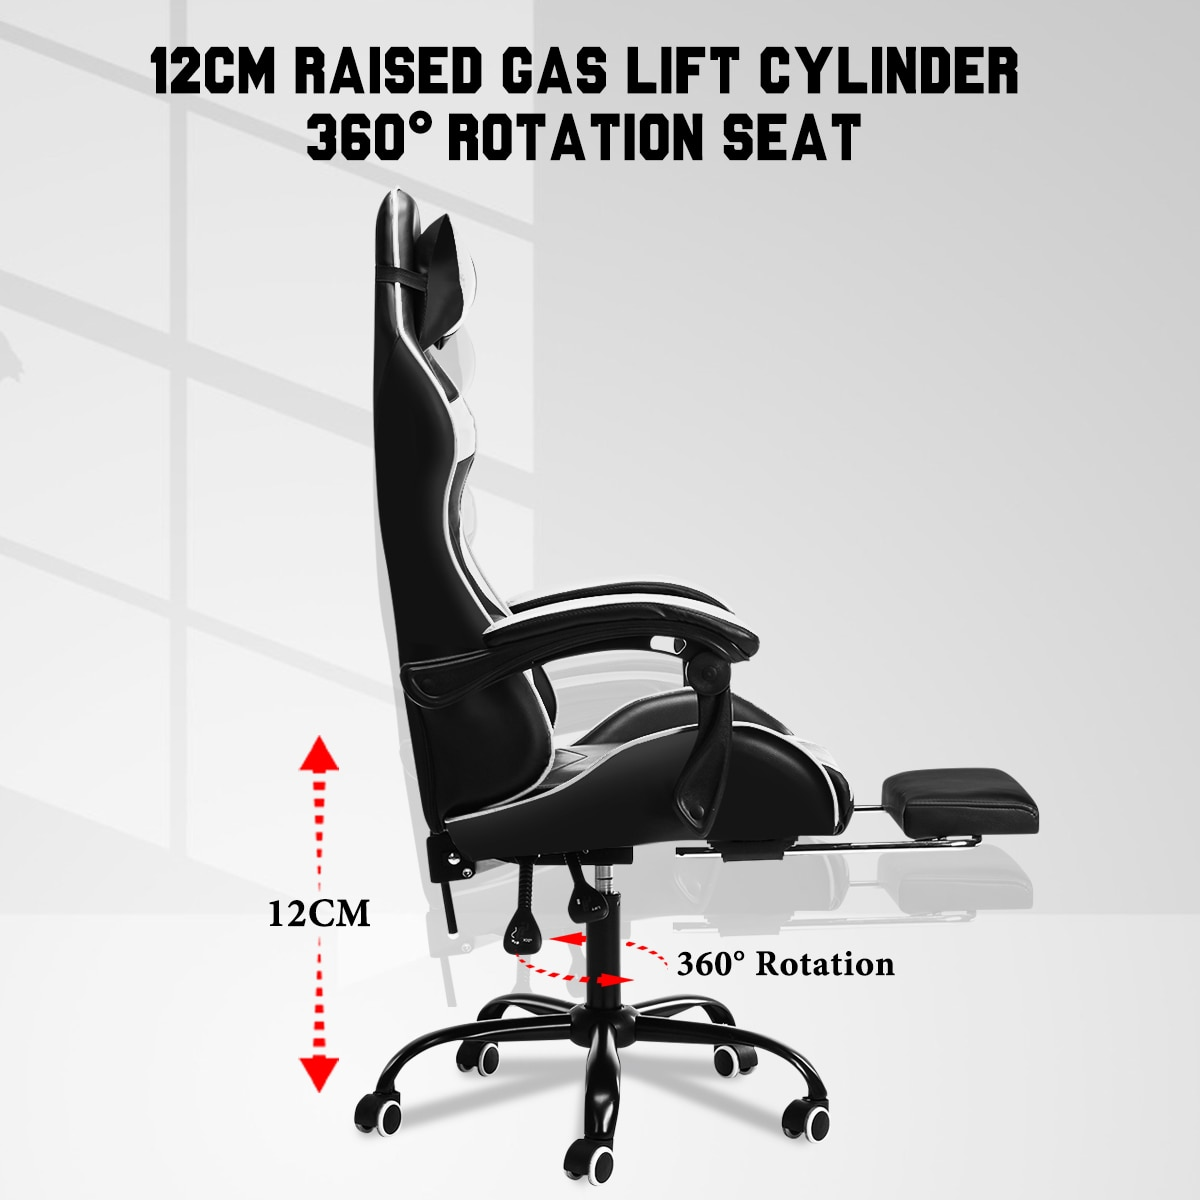 Ha3e79c29597042c294cbb4bbddd4126cO - Leather Office Gaming Chair Home Internet Cafe Racing Chair WCG Gaming Ergonomic Computer Chair Swivel Lifting Lying Gamer Chair